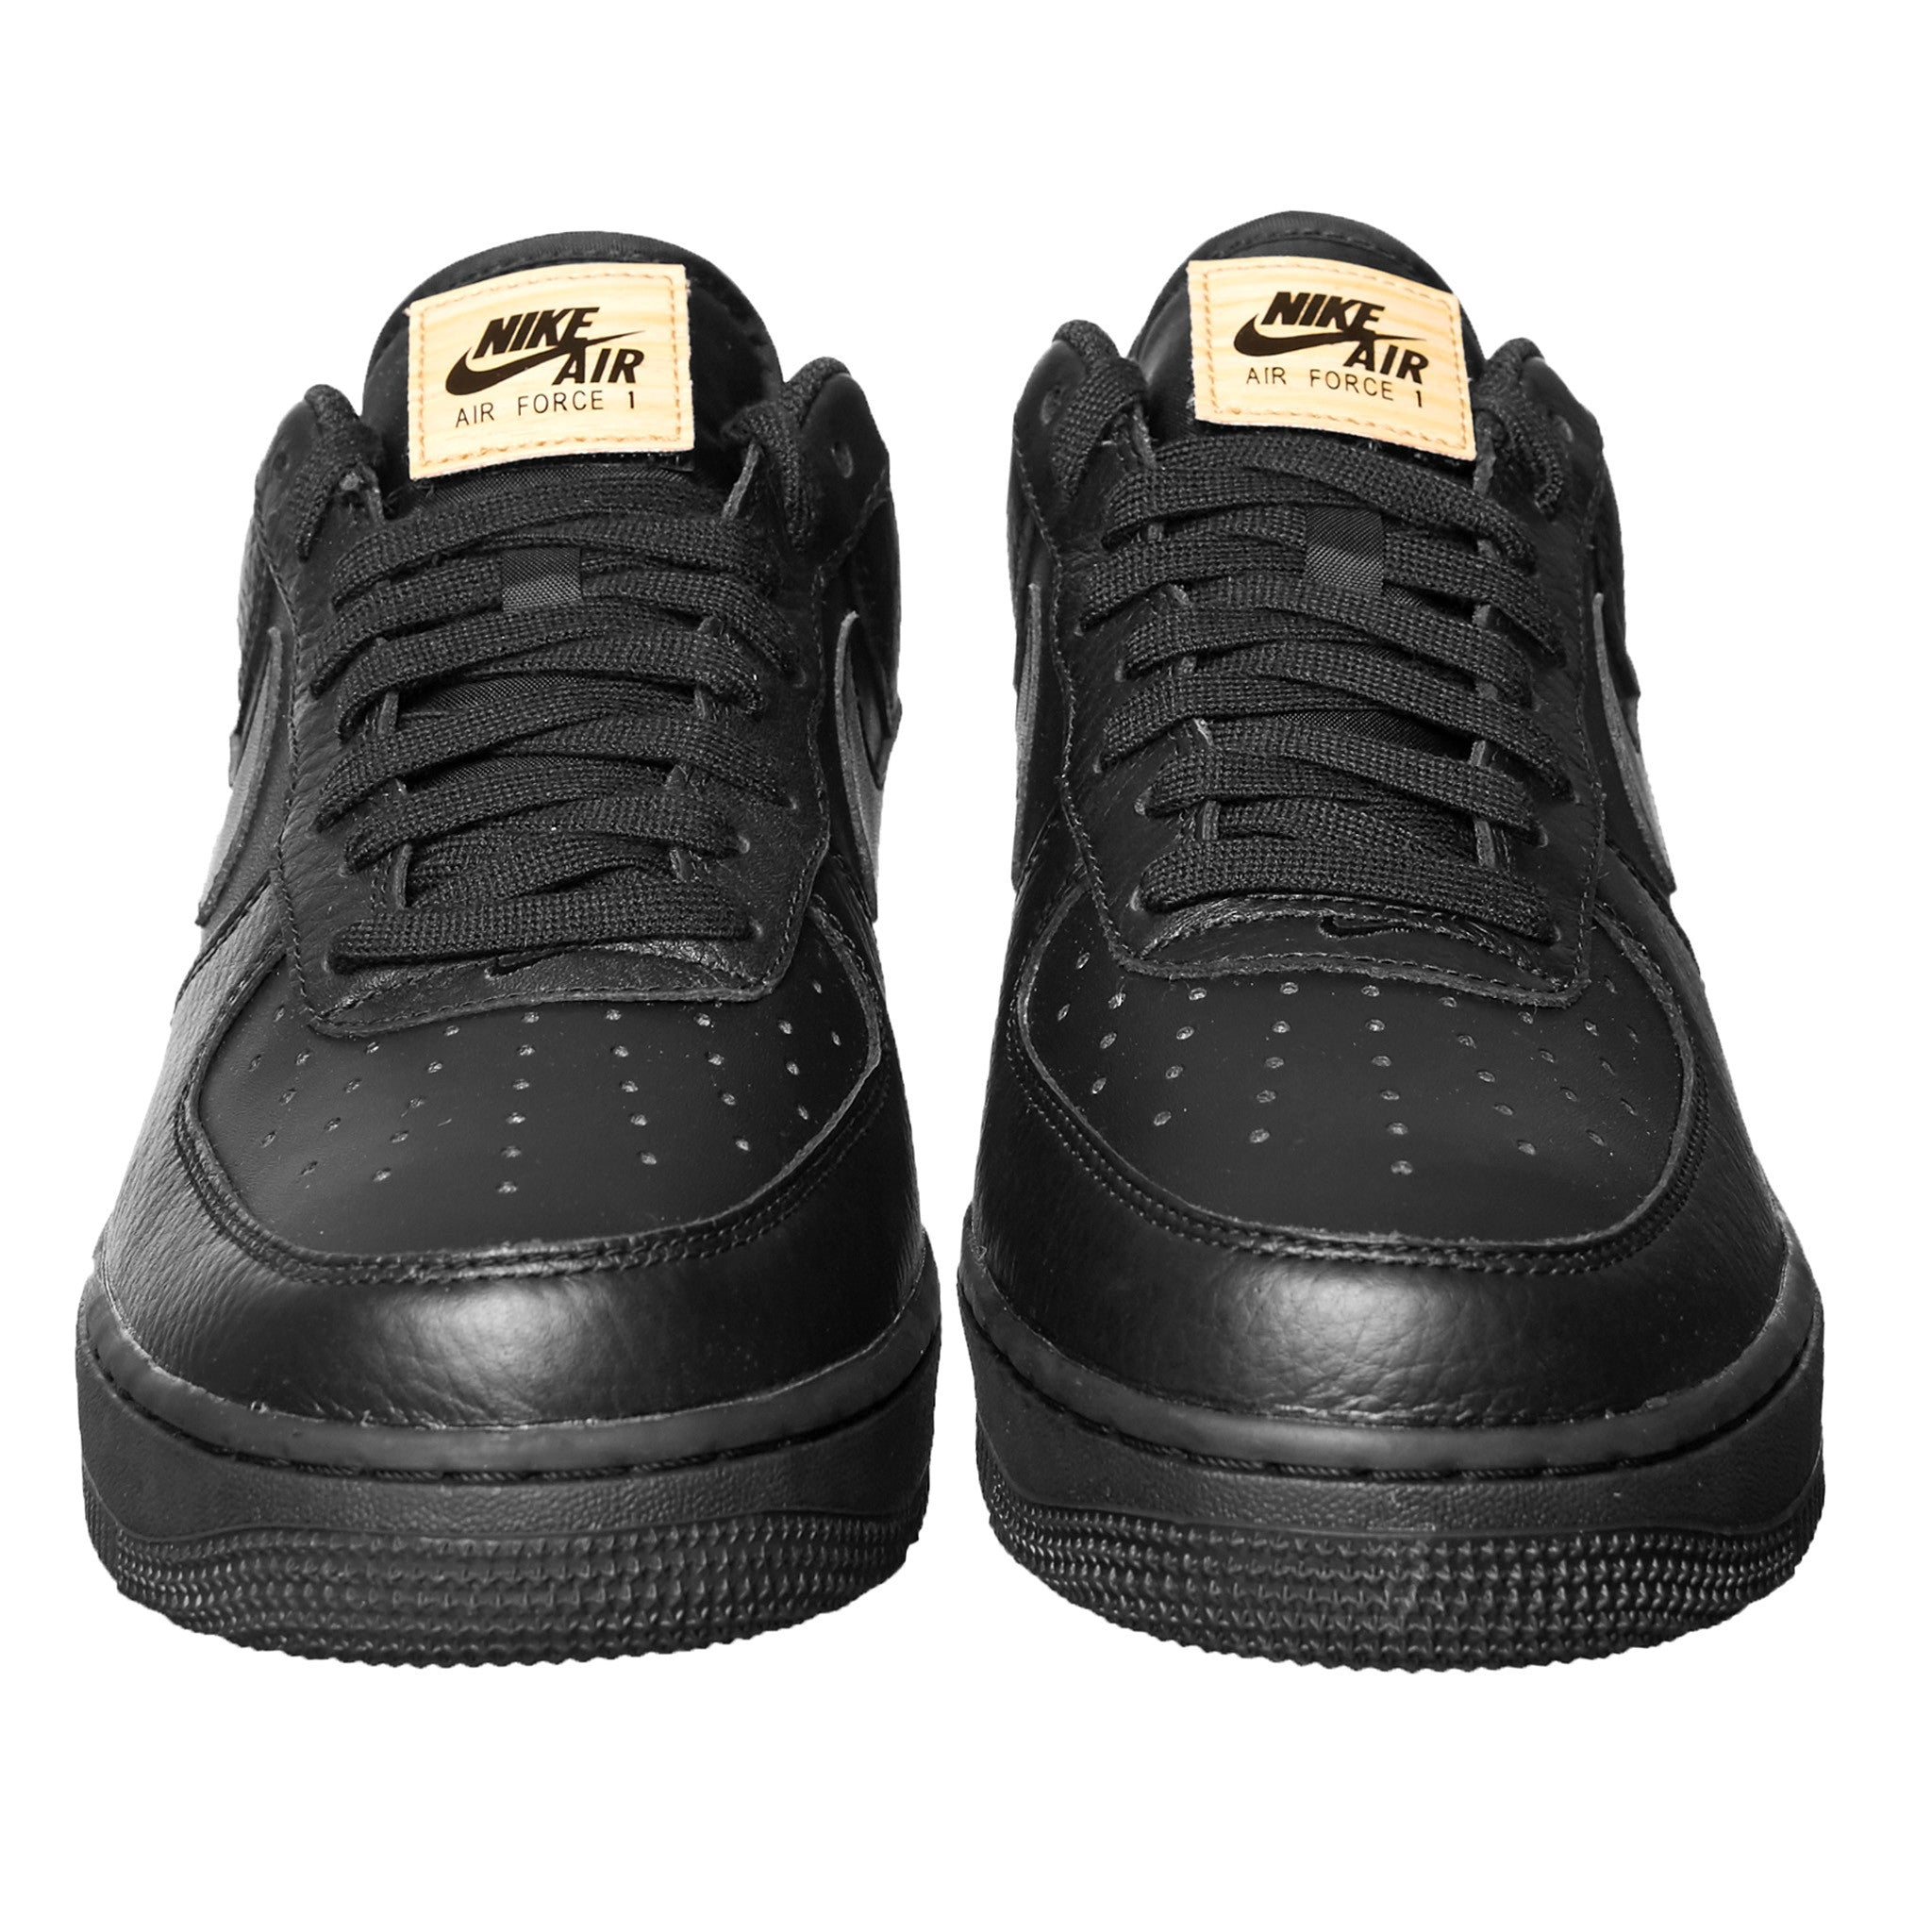 Nike Air Force 1 Hgh-Top LV8